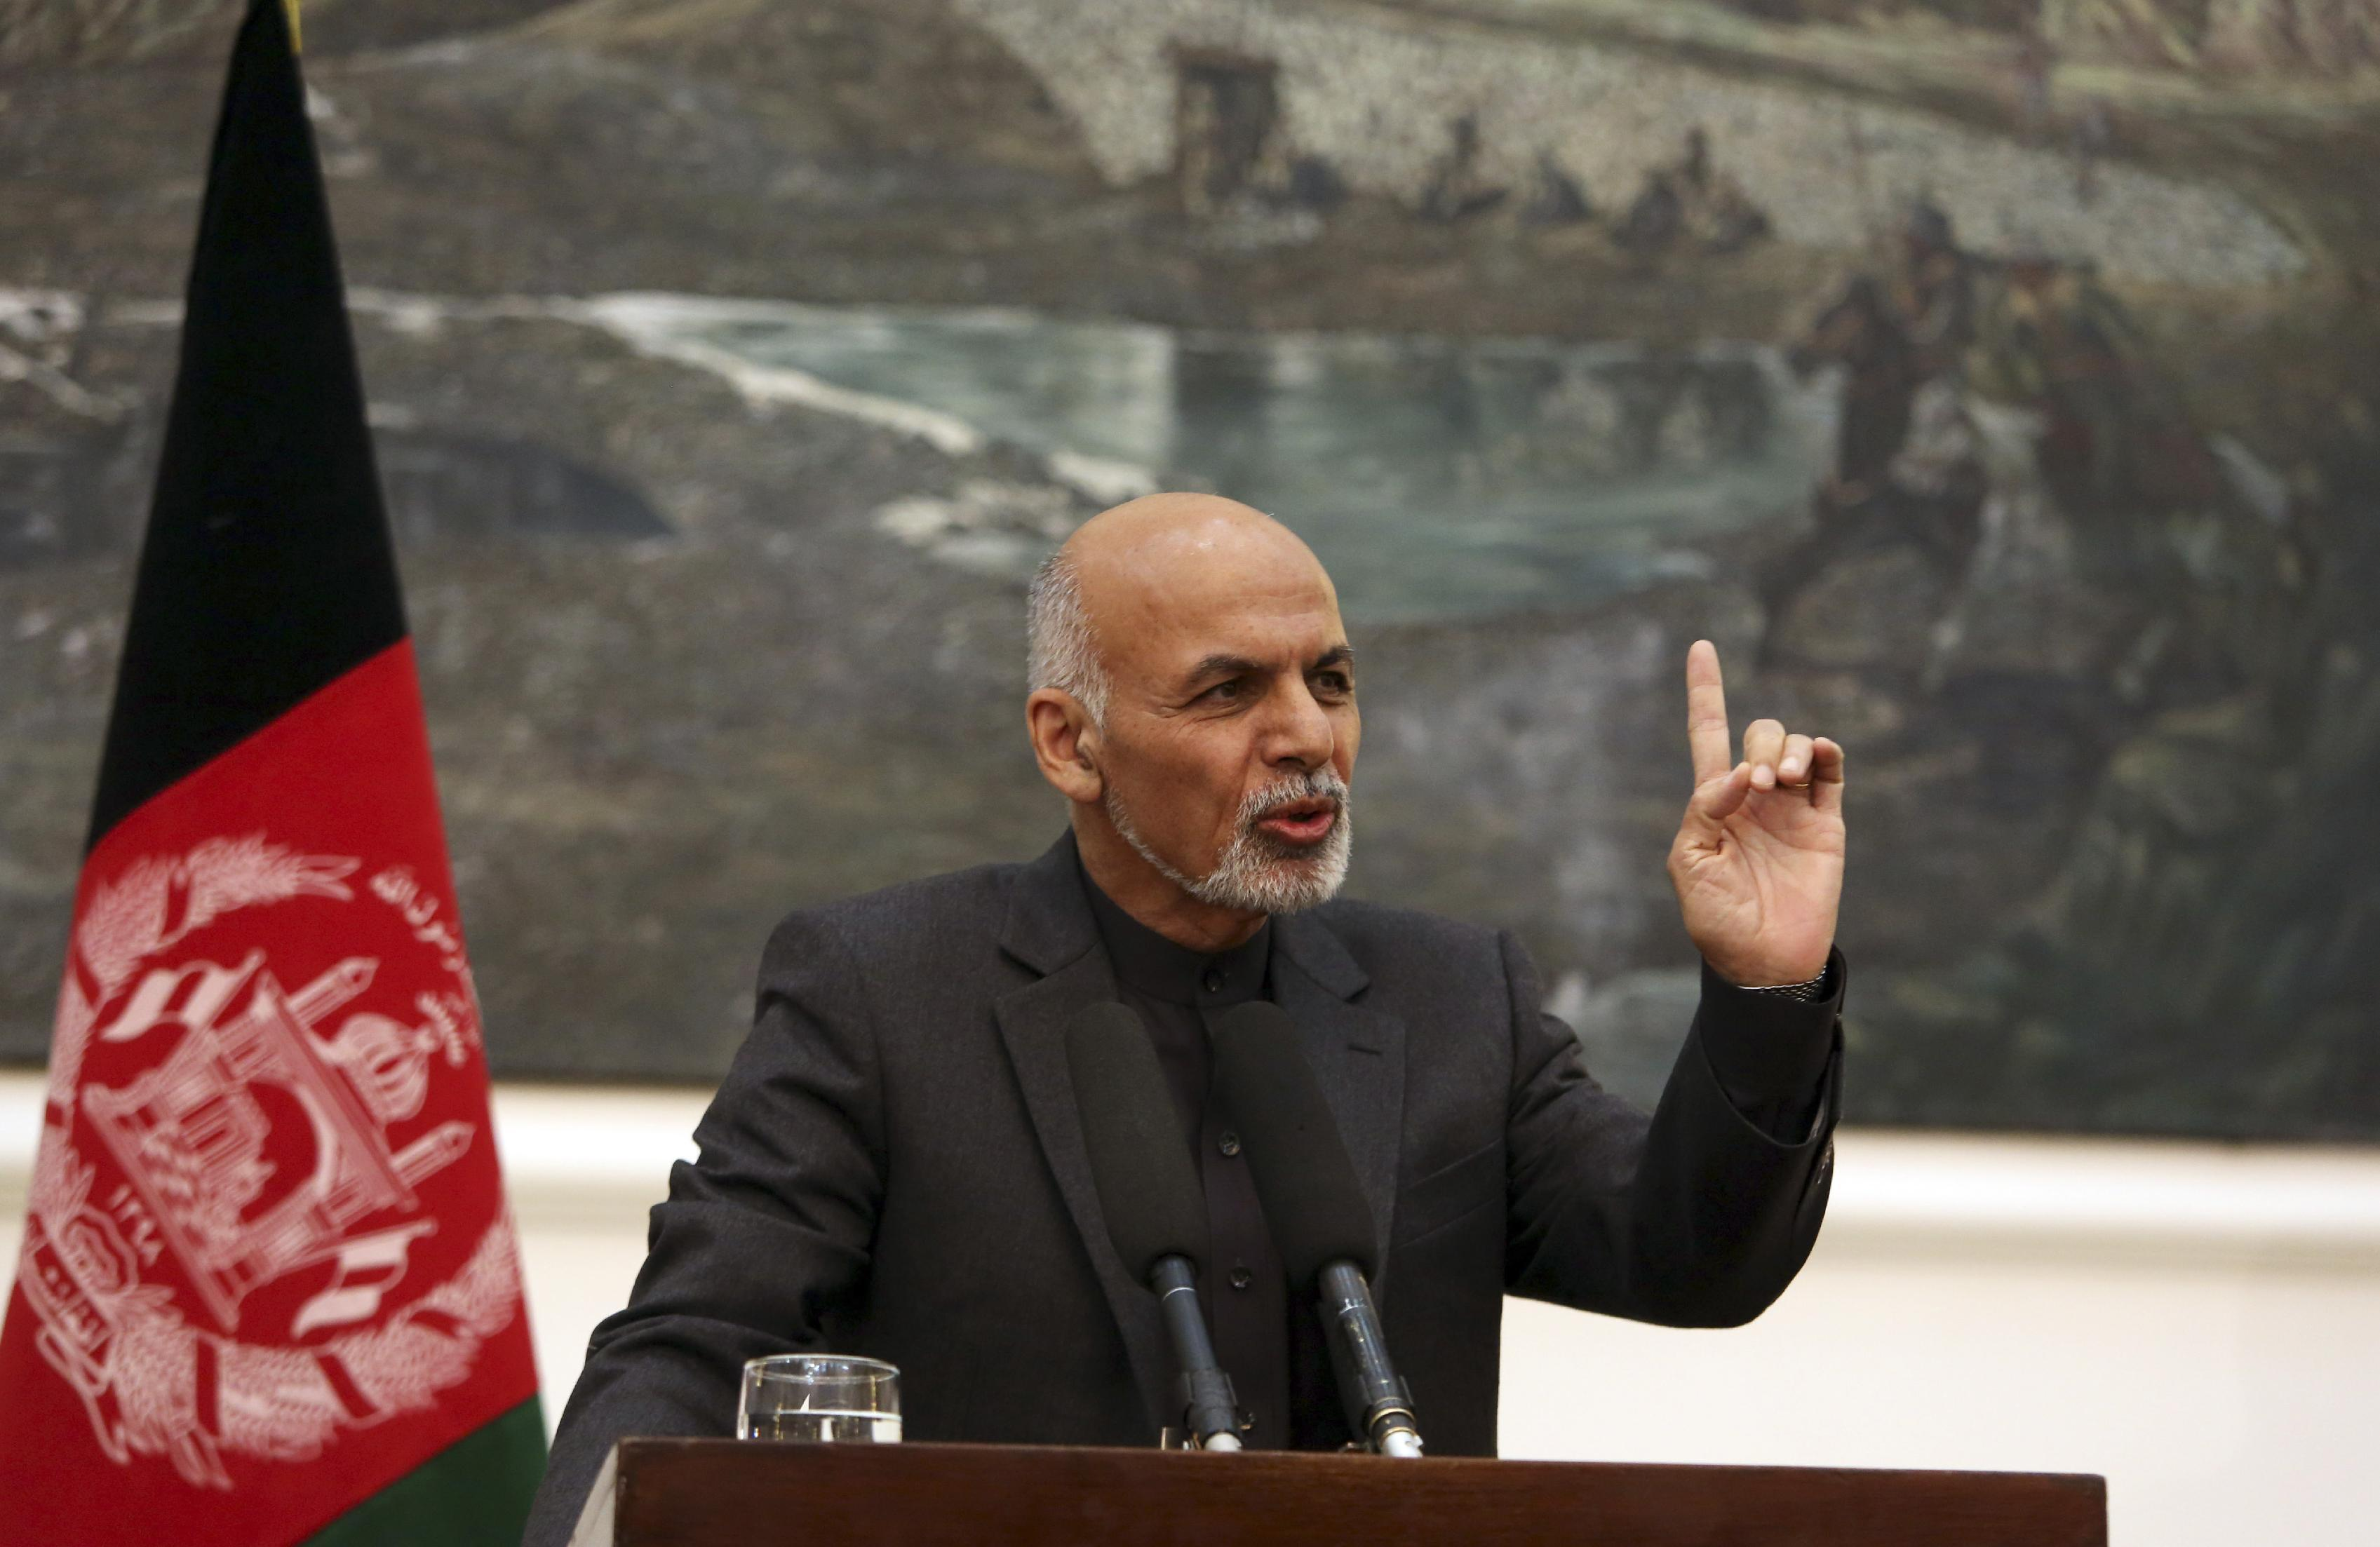 Afghan leader's two-man government raises concerns